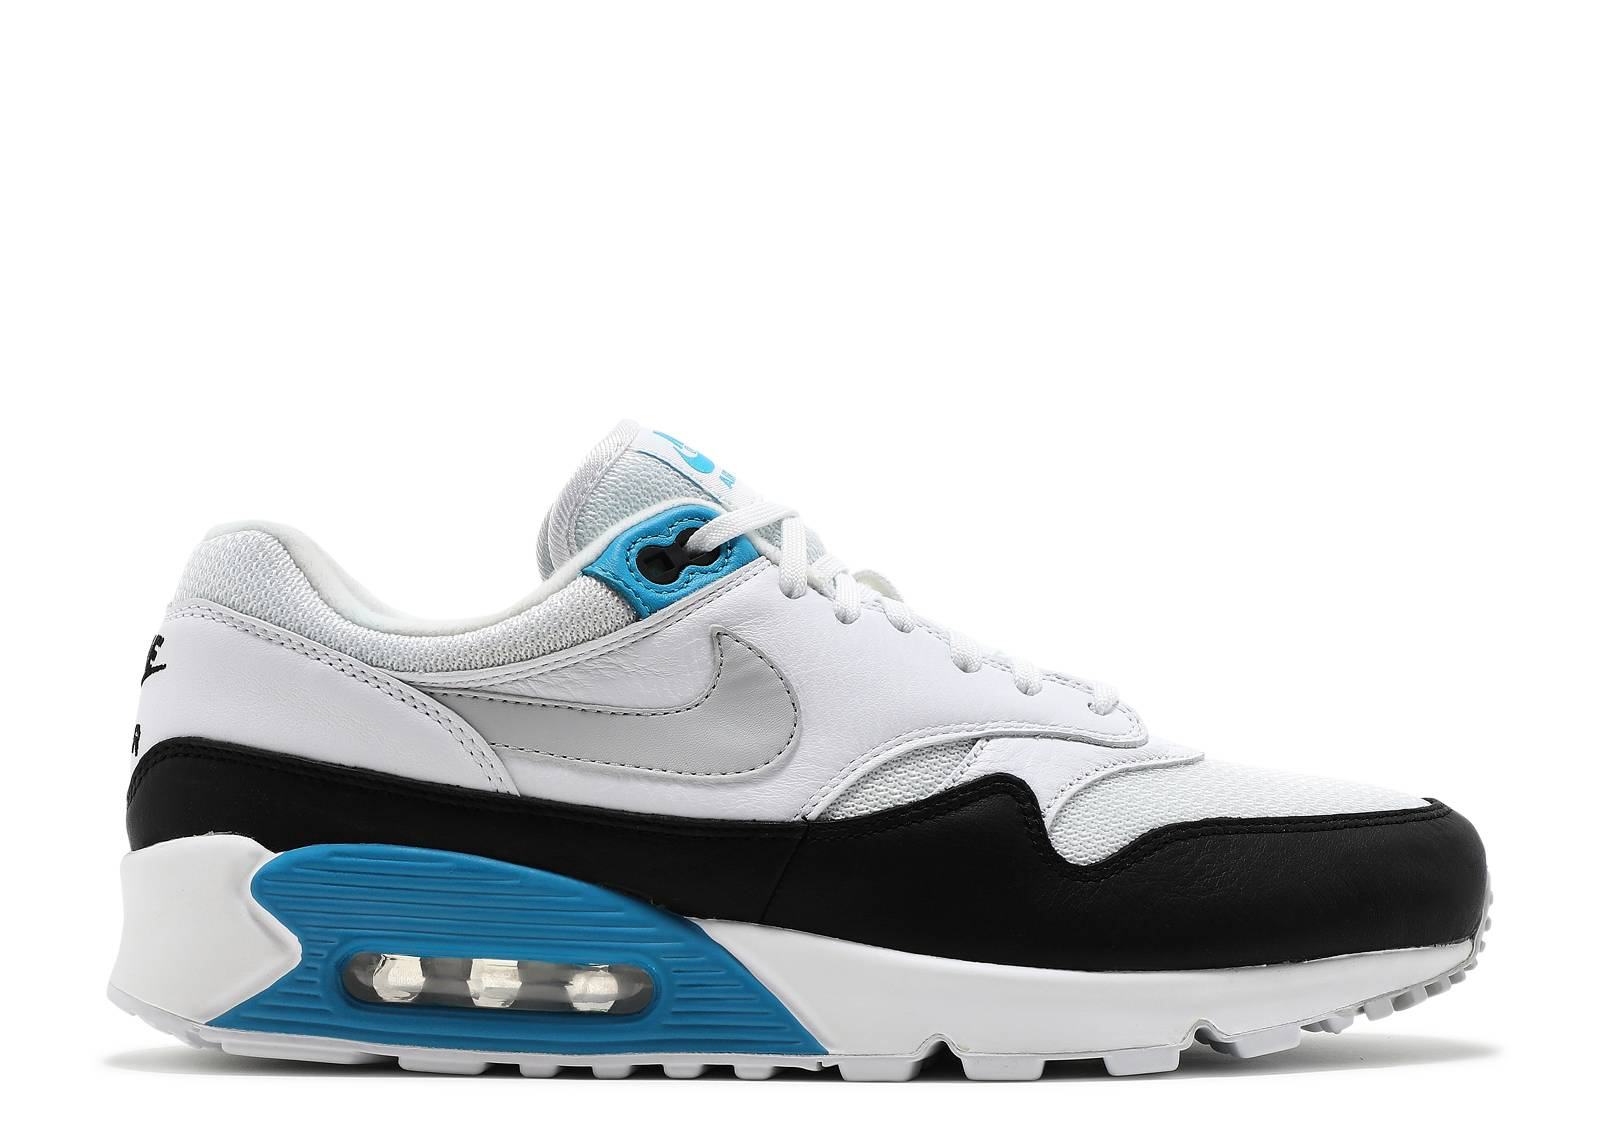 Nike Air Max 90 Men's & Women's Shoes | Flight Club